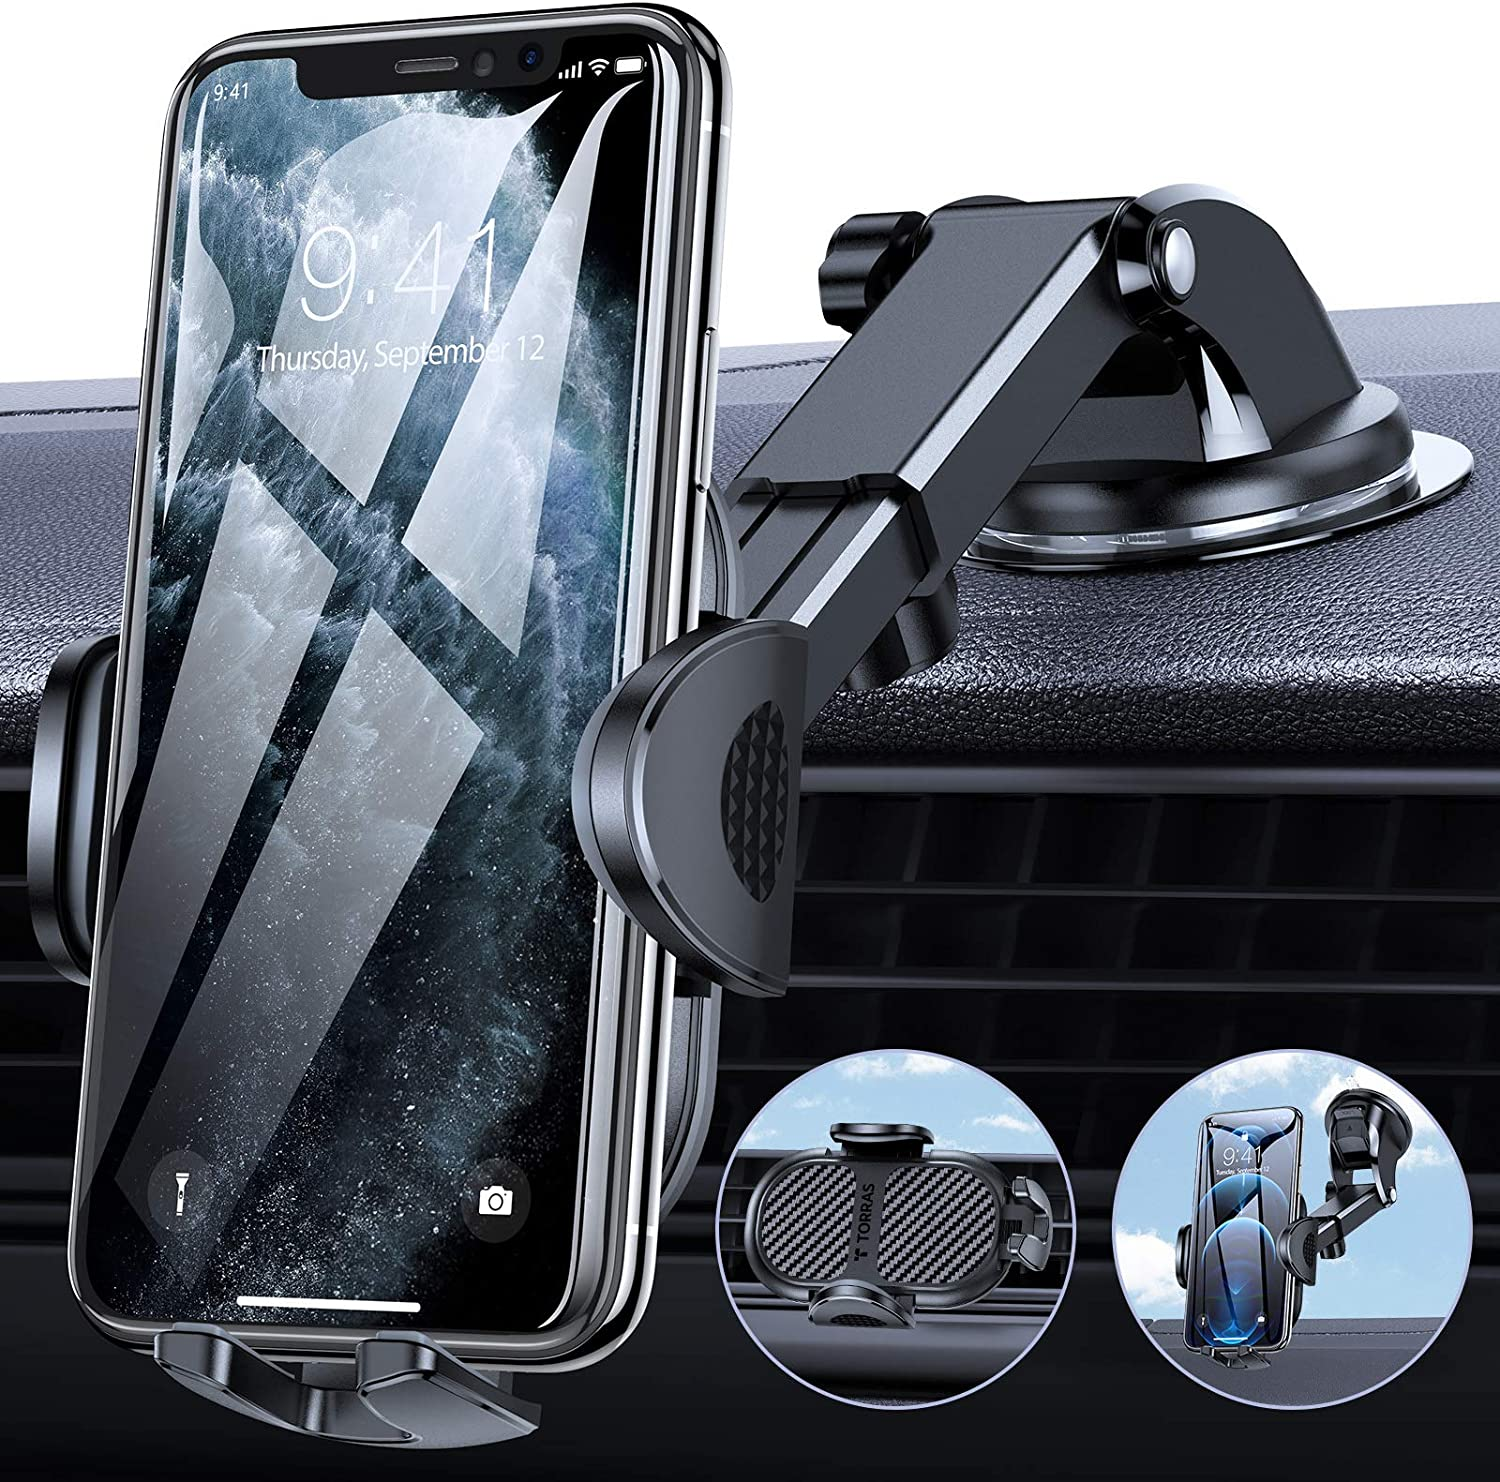 TORRAS Cell Phone Holder for Car [Thick Case & Big Phone Friendly] 3 in 1 Car Phone Holder Mount Dashboard Air Vent Windshield Compatible with iPhone 12 11 Pro Max Samsung Galaxy Note S21 Ultra